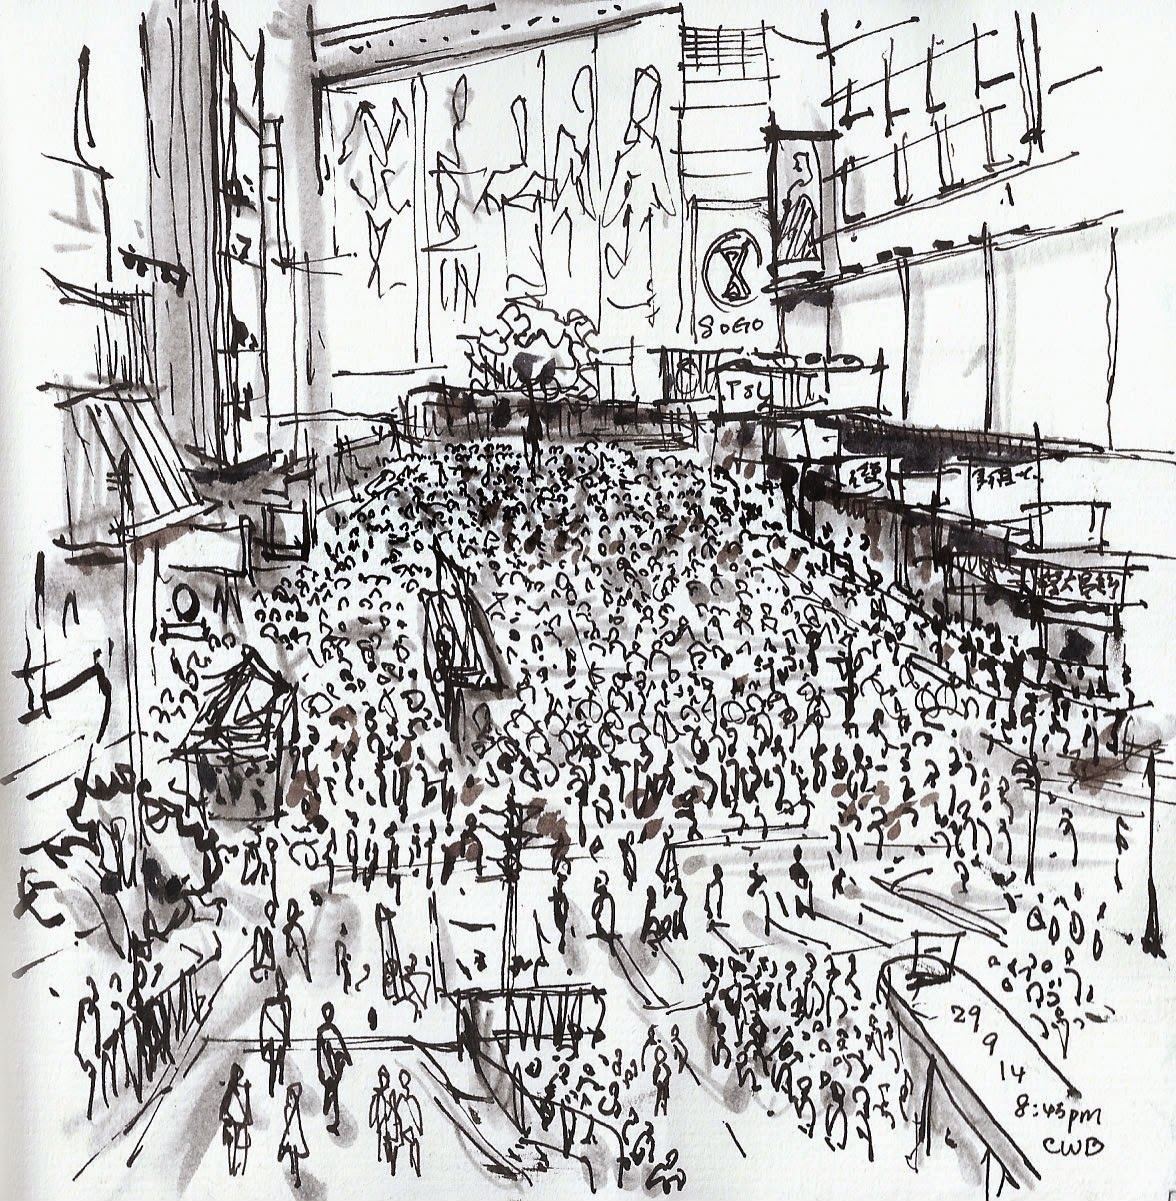 1176x1201 Eyewitness Sketches Of Hong Kong Pro Democracy Protests Urban